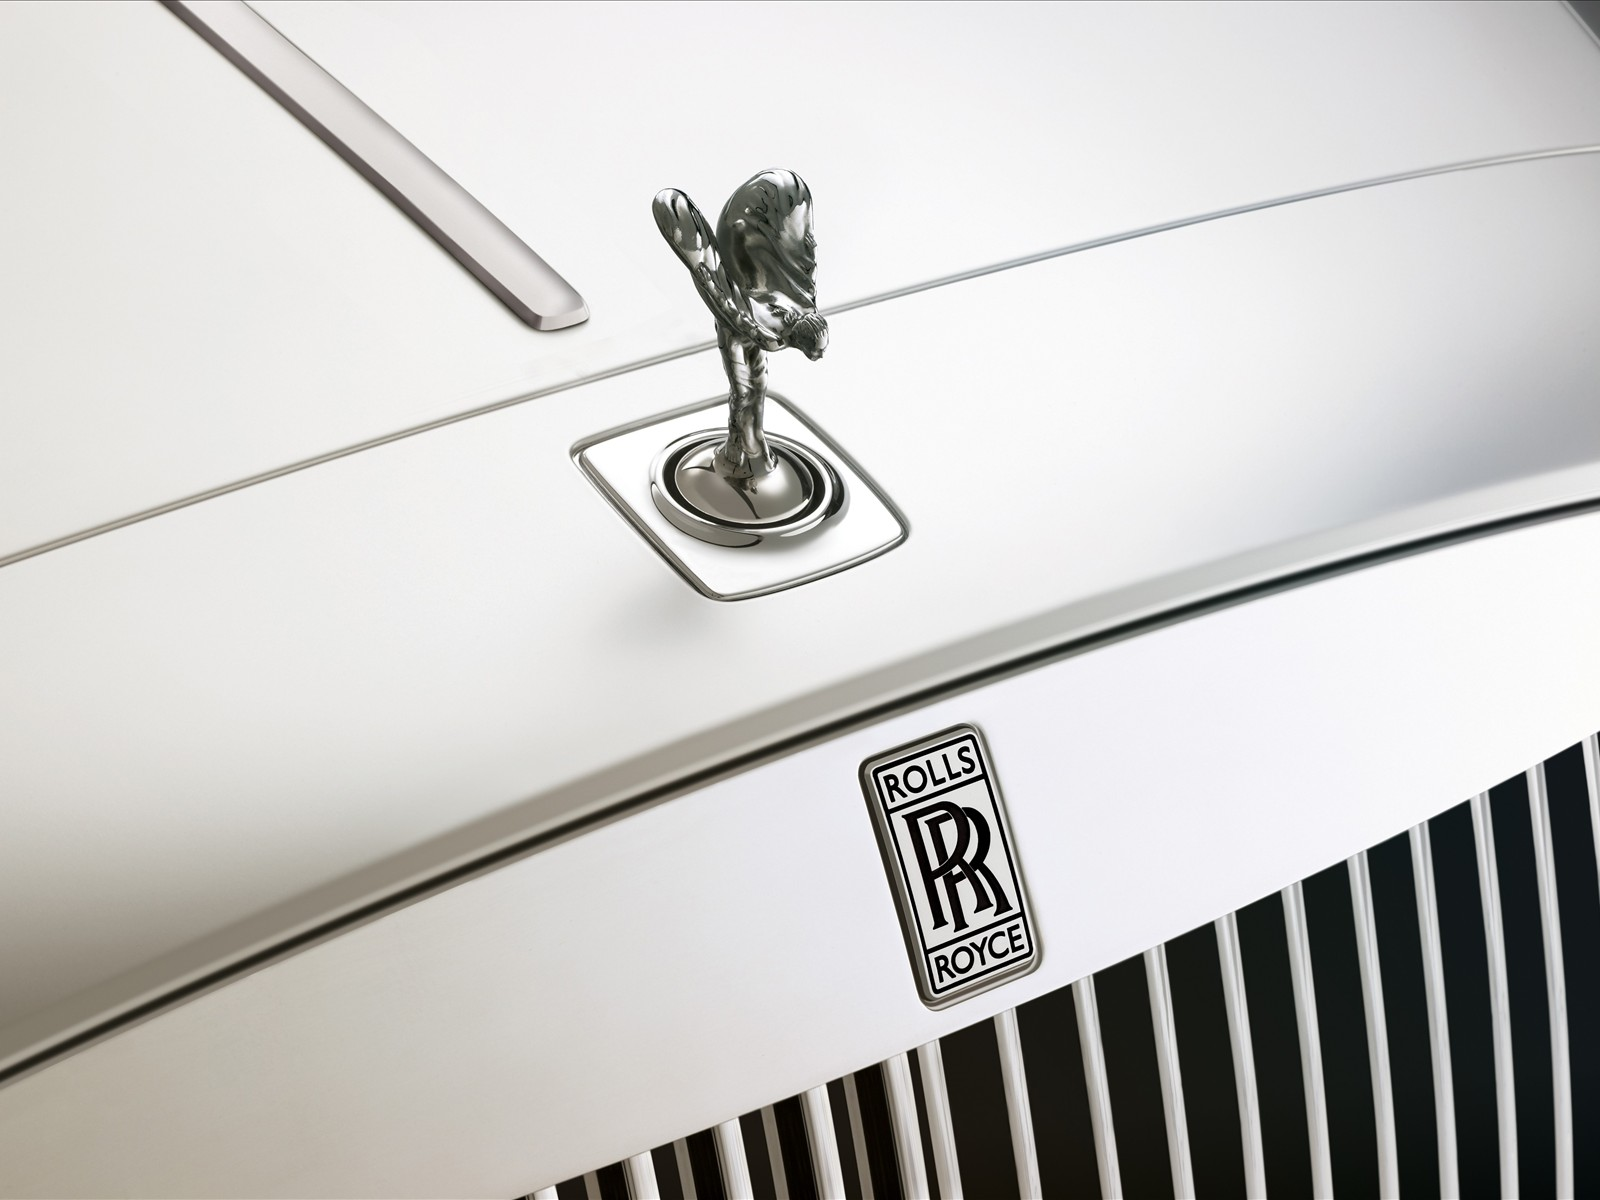 Rolls Royce Logo Rolls Royce Car Symbol Meaning And History Car